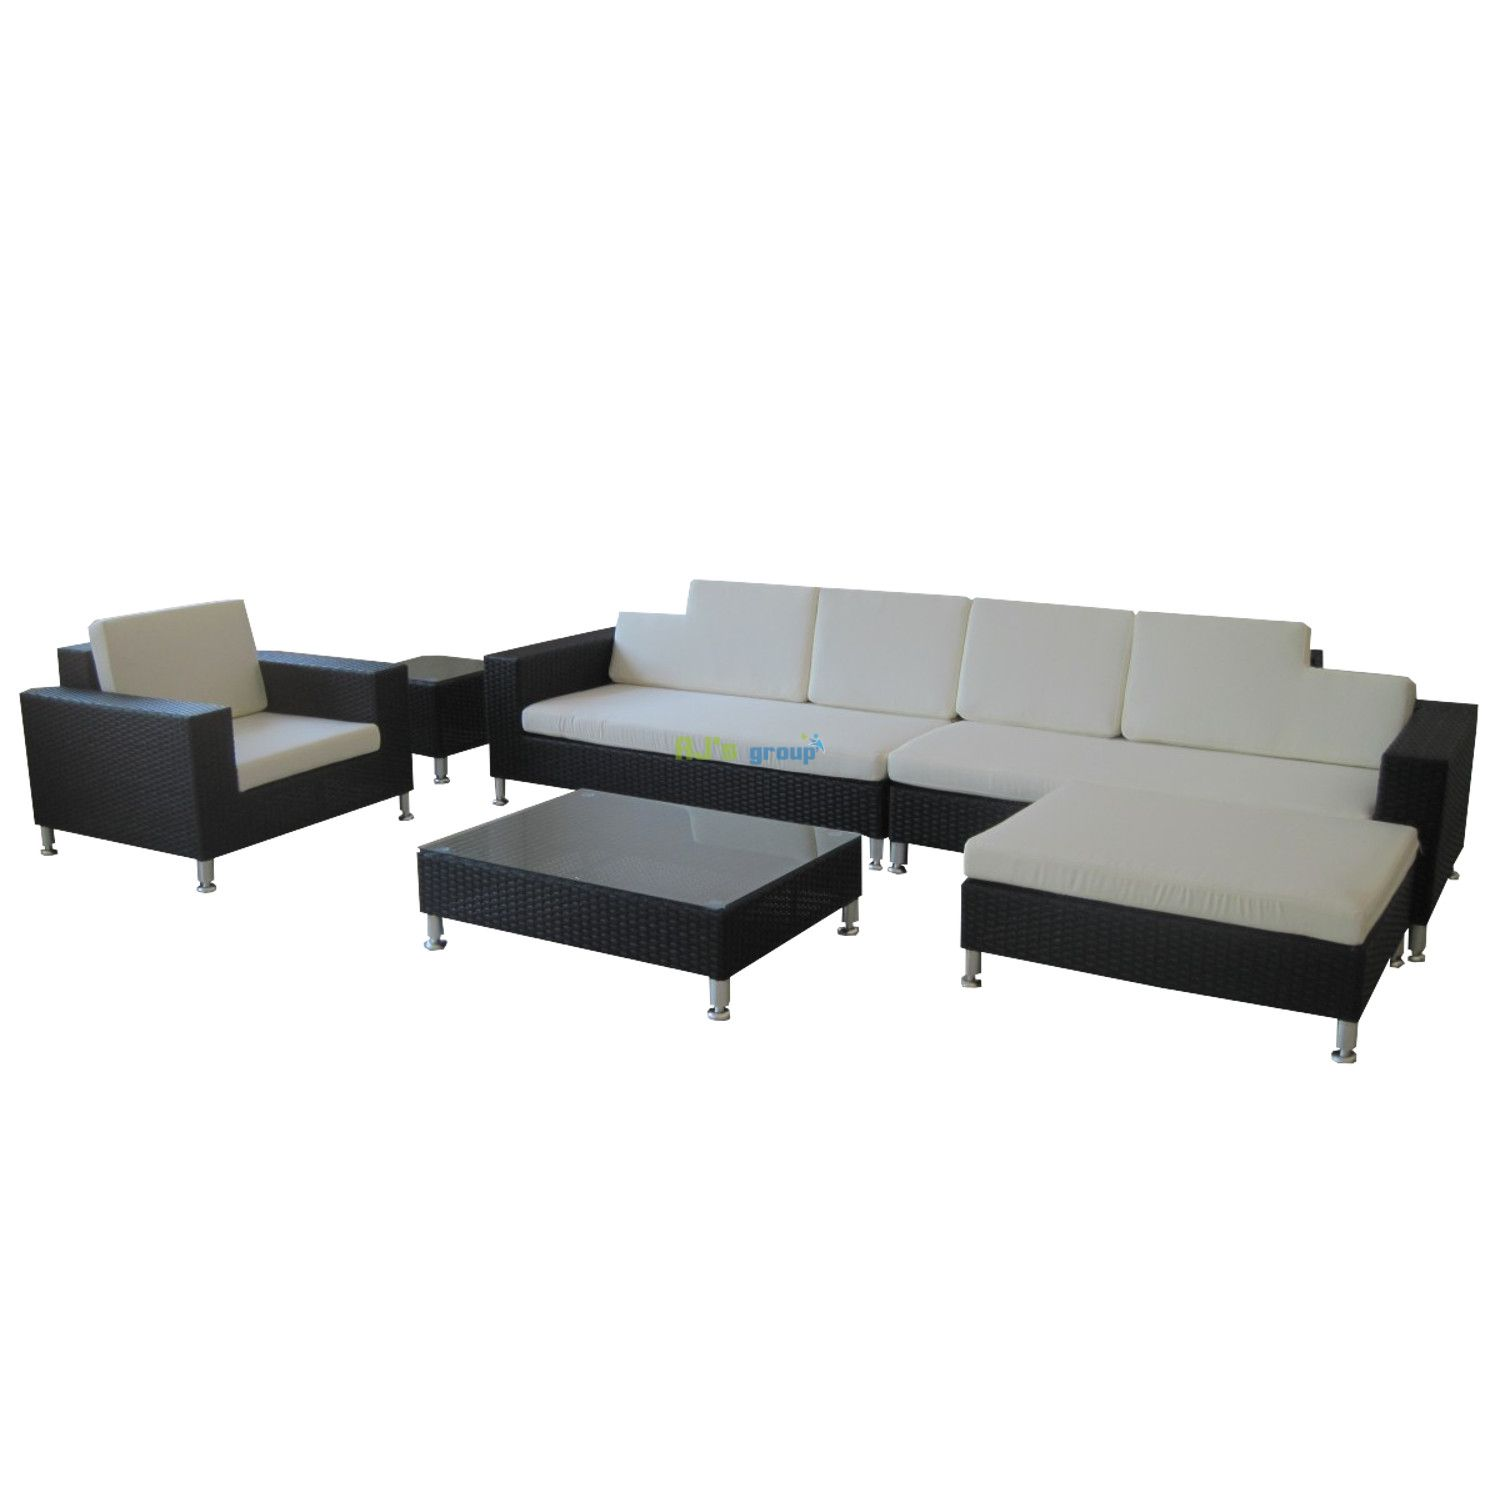 rattan wicker garden patio set alabama outdoor lounge furniture couch. Black Bedroom Furniture Sets. Home Design Ideas